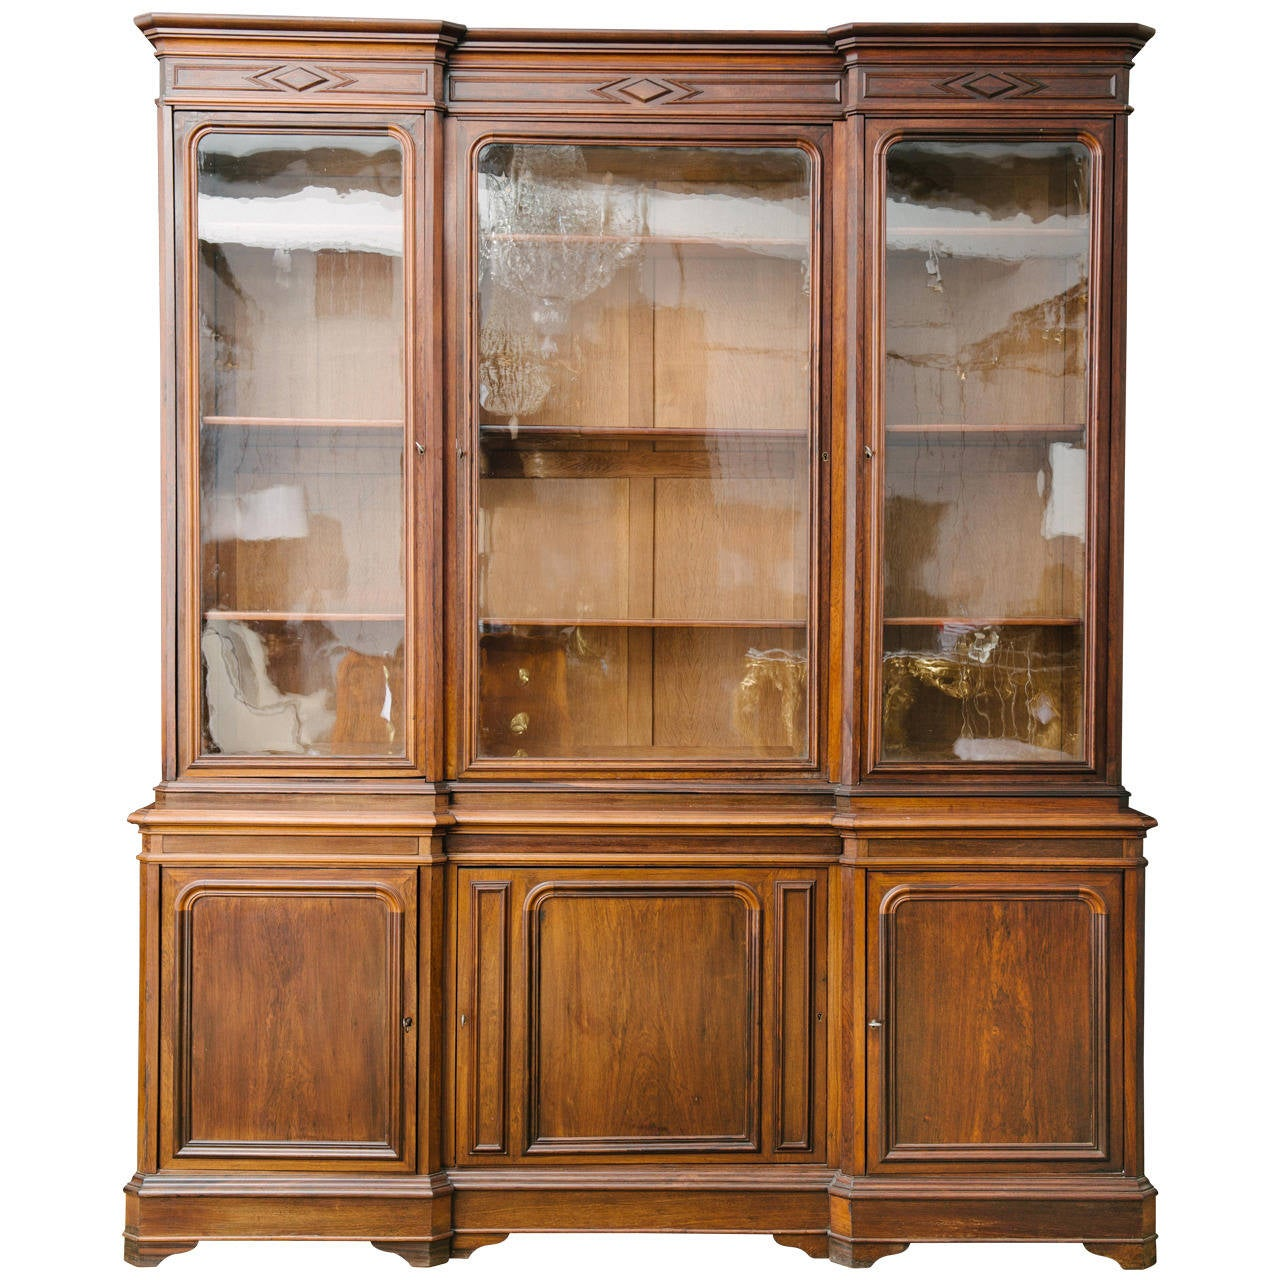 19th century french louis philippe walnut bibliotheque for. Black Bedroom Furniture Sets. Home Design Ideas